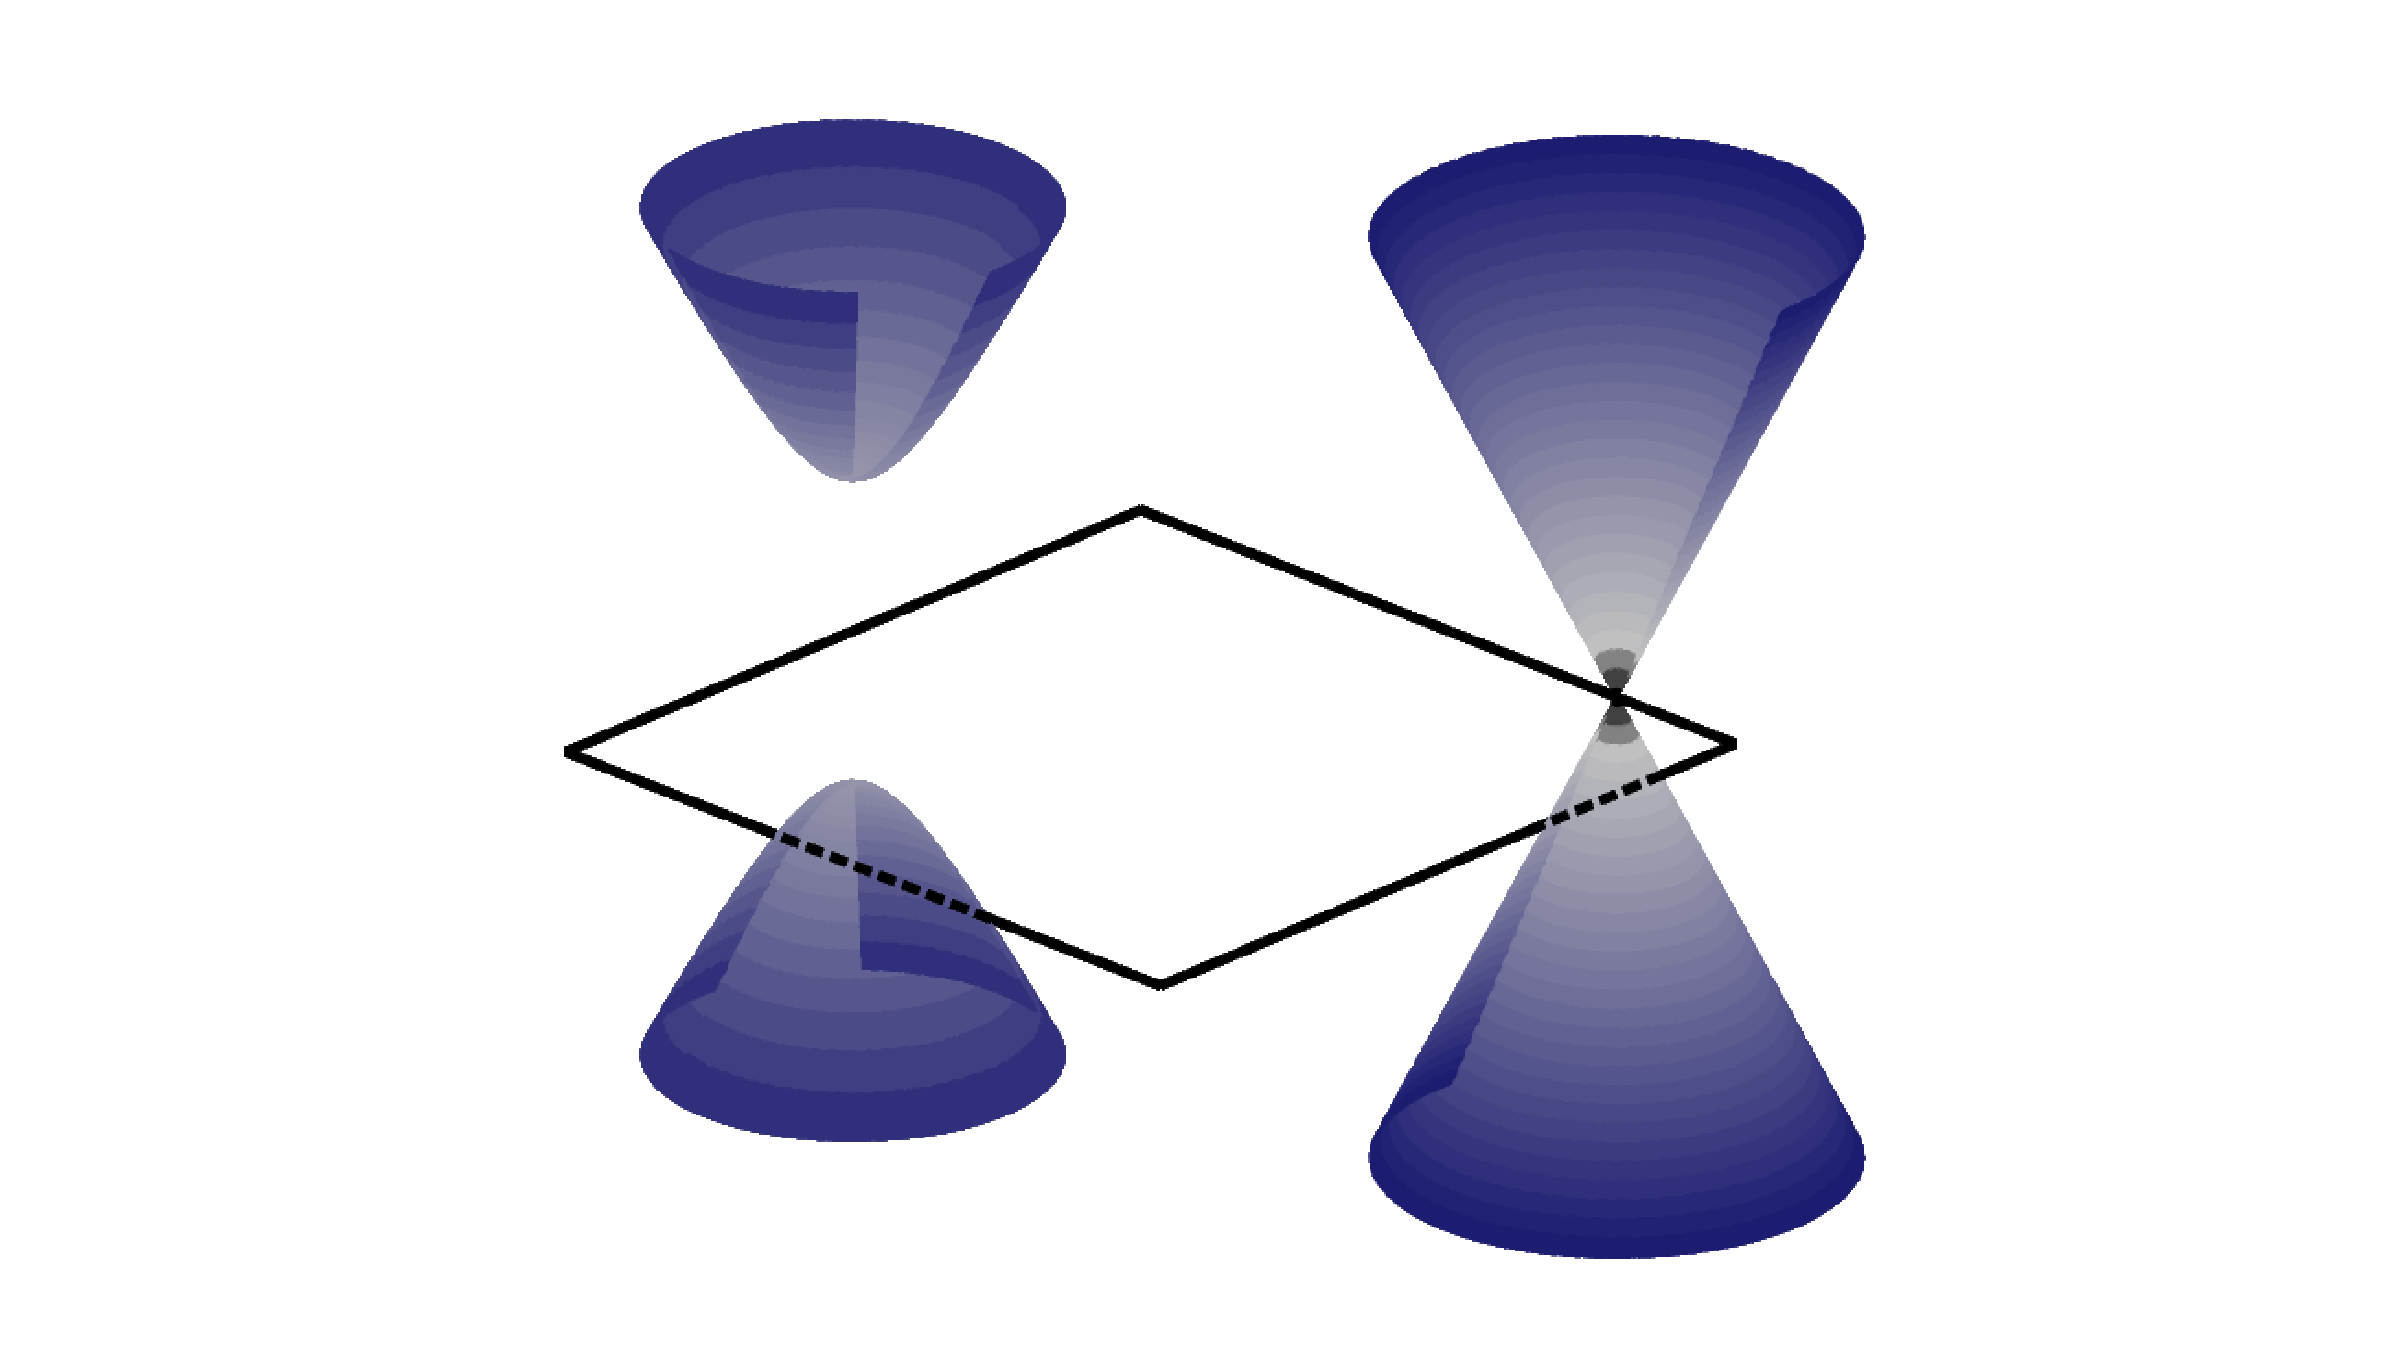 Antiferromagnets with specific symmetries host massles and massive Dirac fermions (on the picture) around Fermi level as emergent phenomenon in their bandstructure.